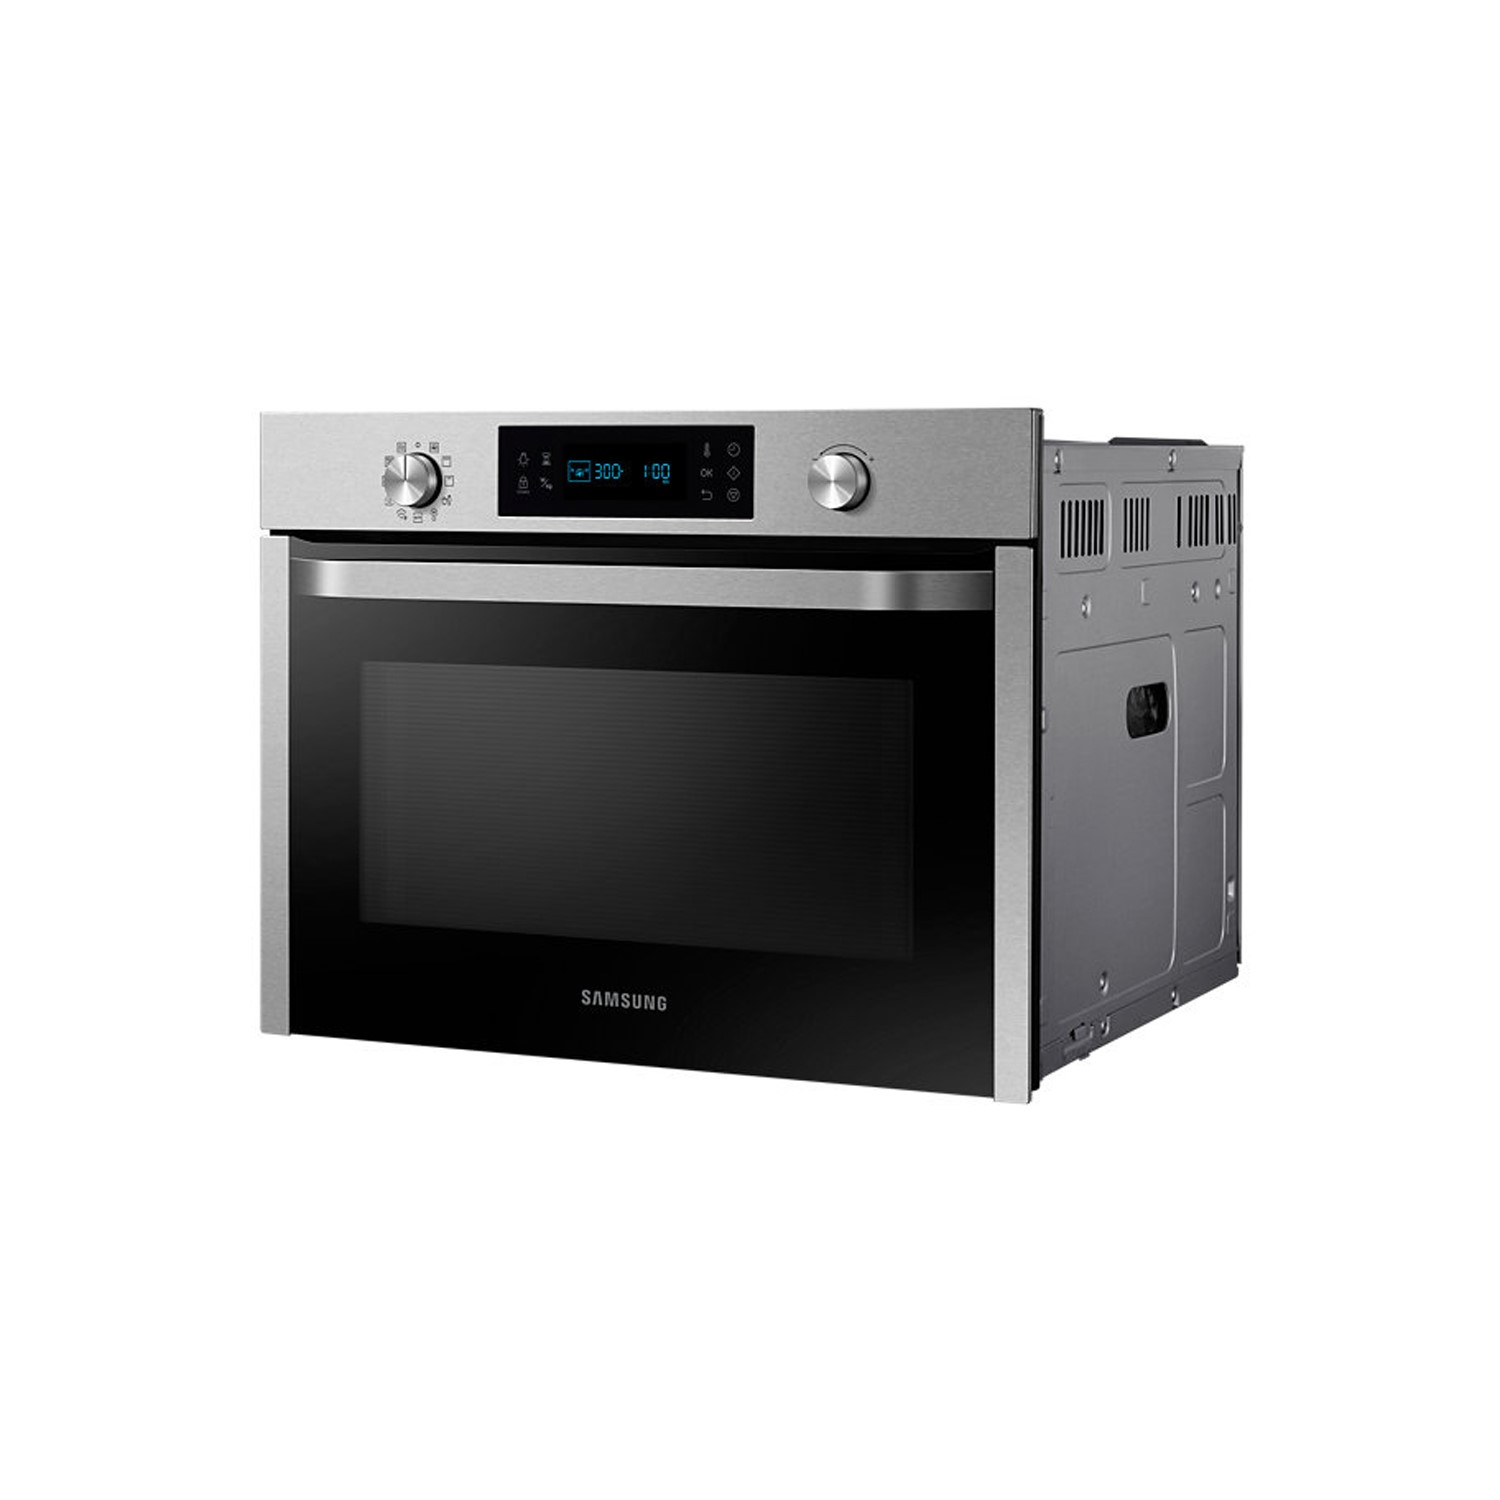 samsung nq50j3530bs compact height combination microwave oven stainless steel